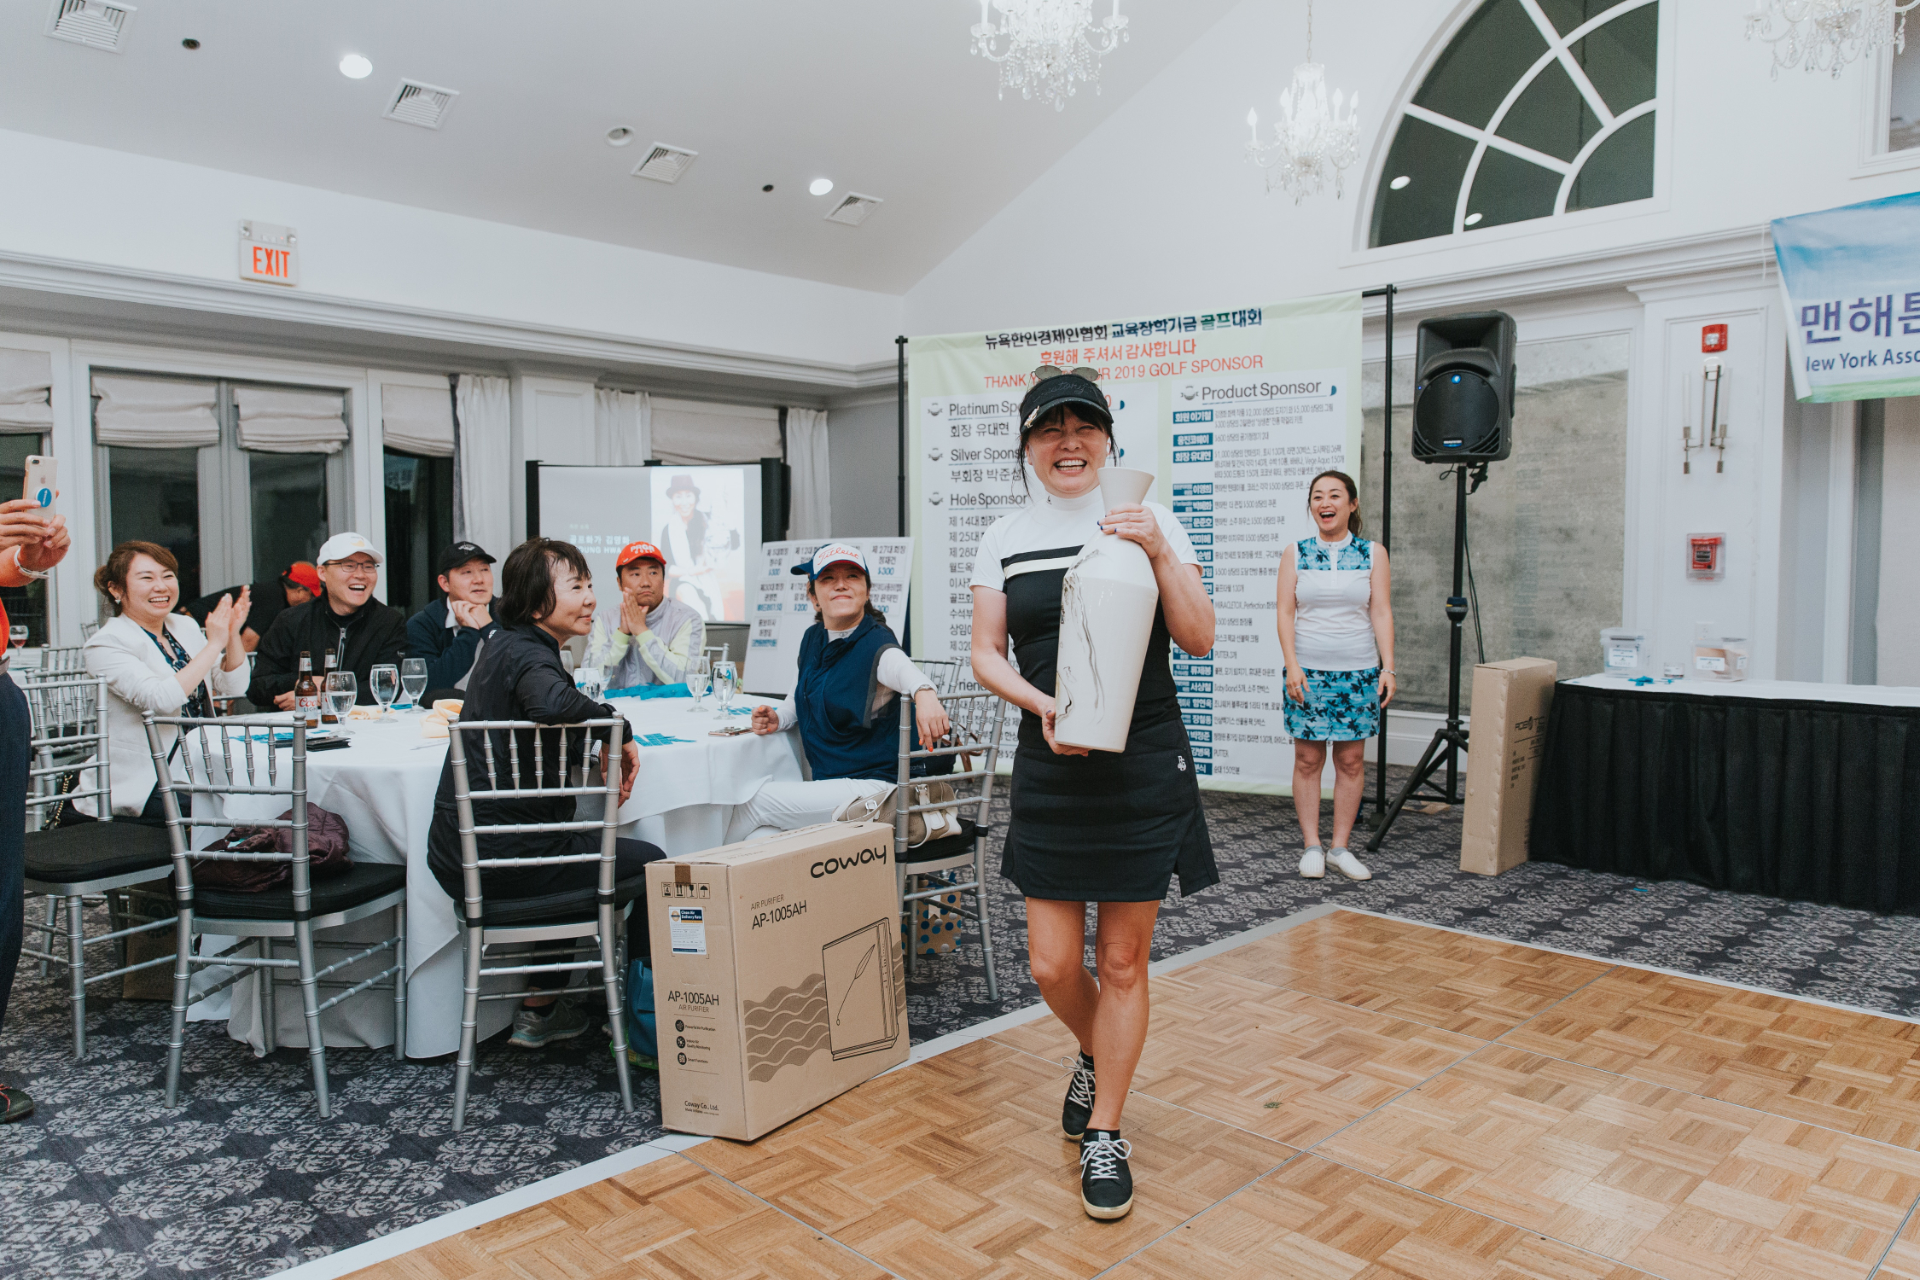 https://nykbi.com/new/wp-content/uploads/2019/07/190619-Scholarship-Fundraising-Golf-Tournament-063.jpg